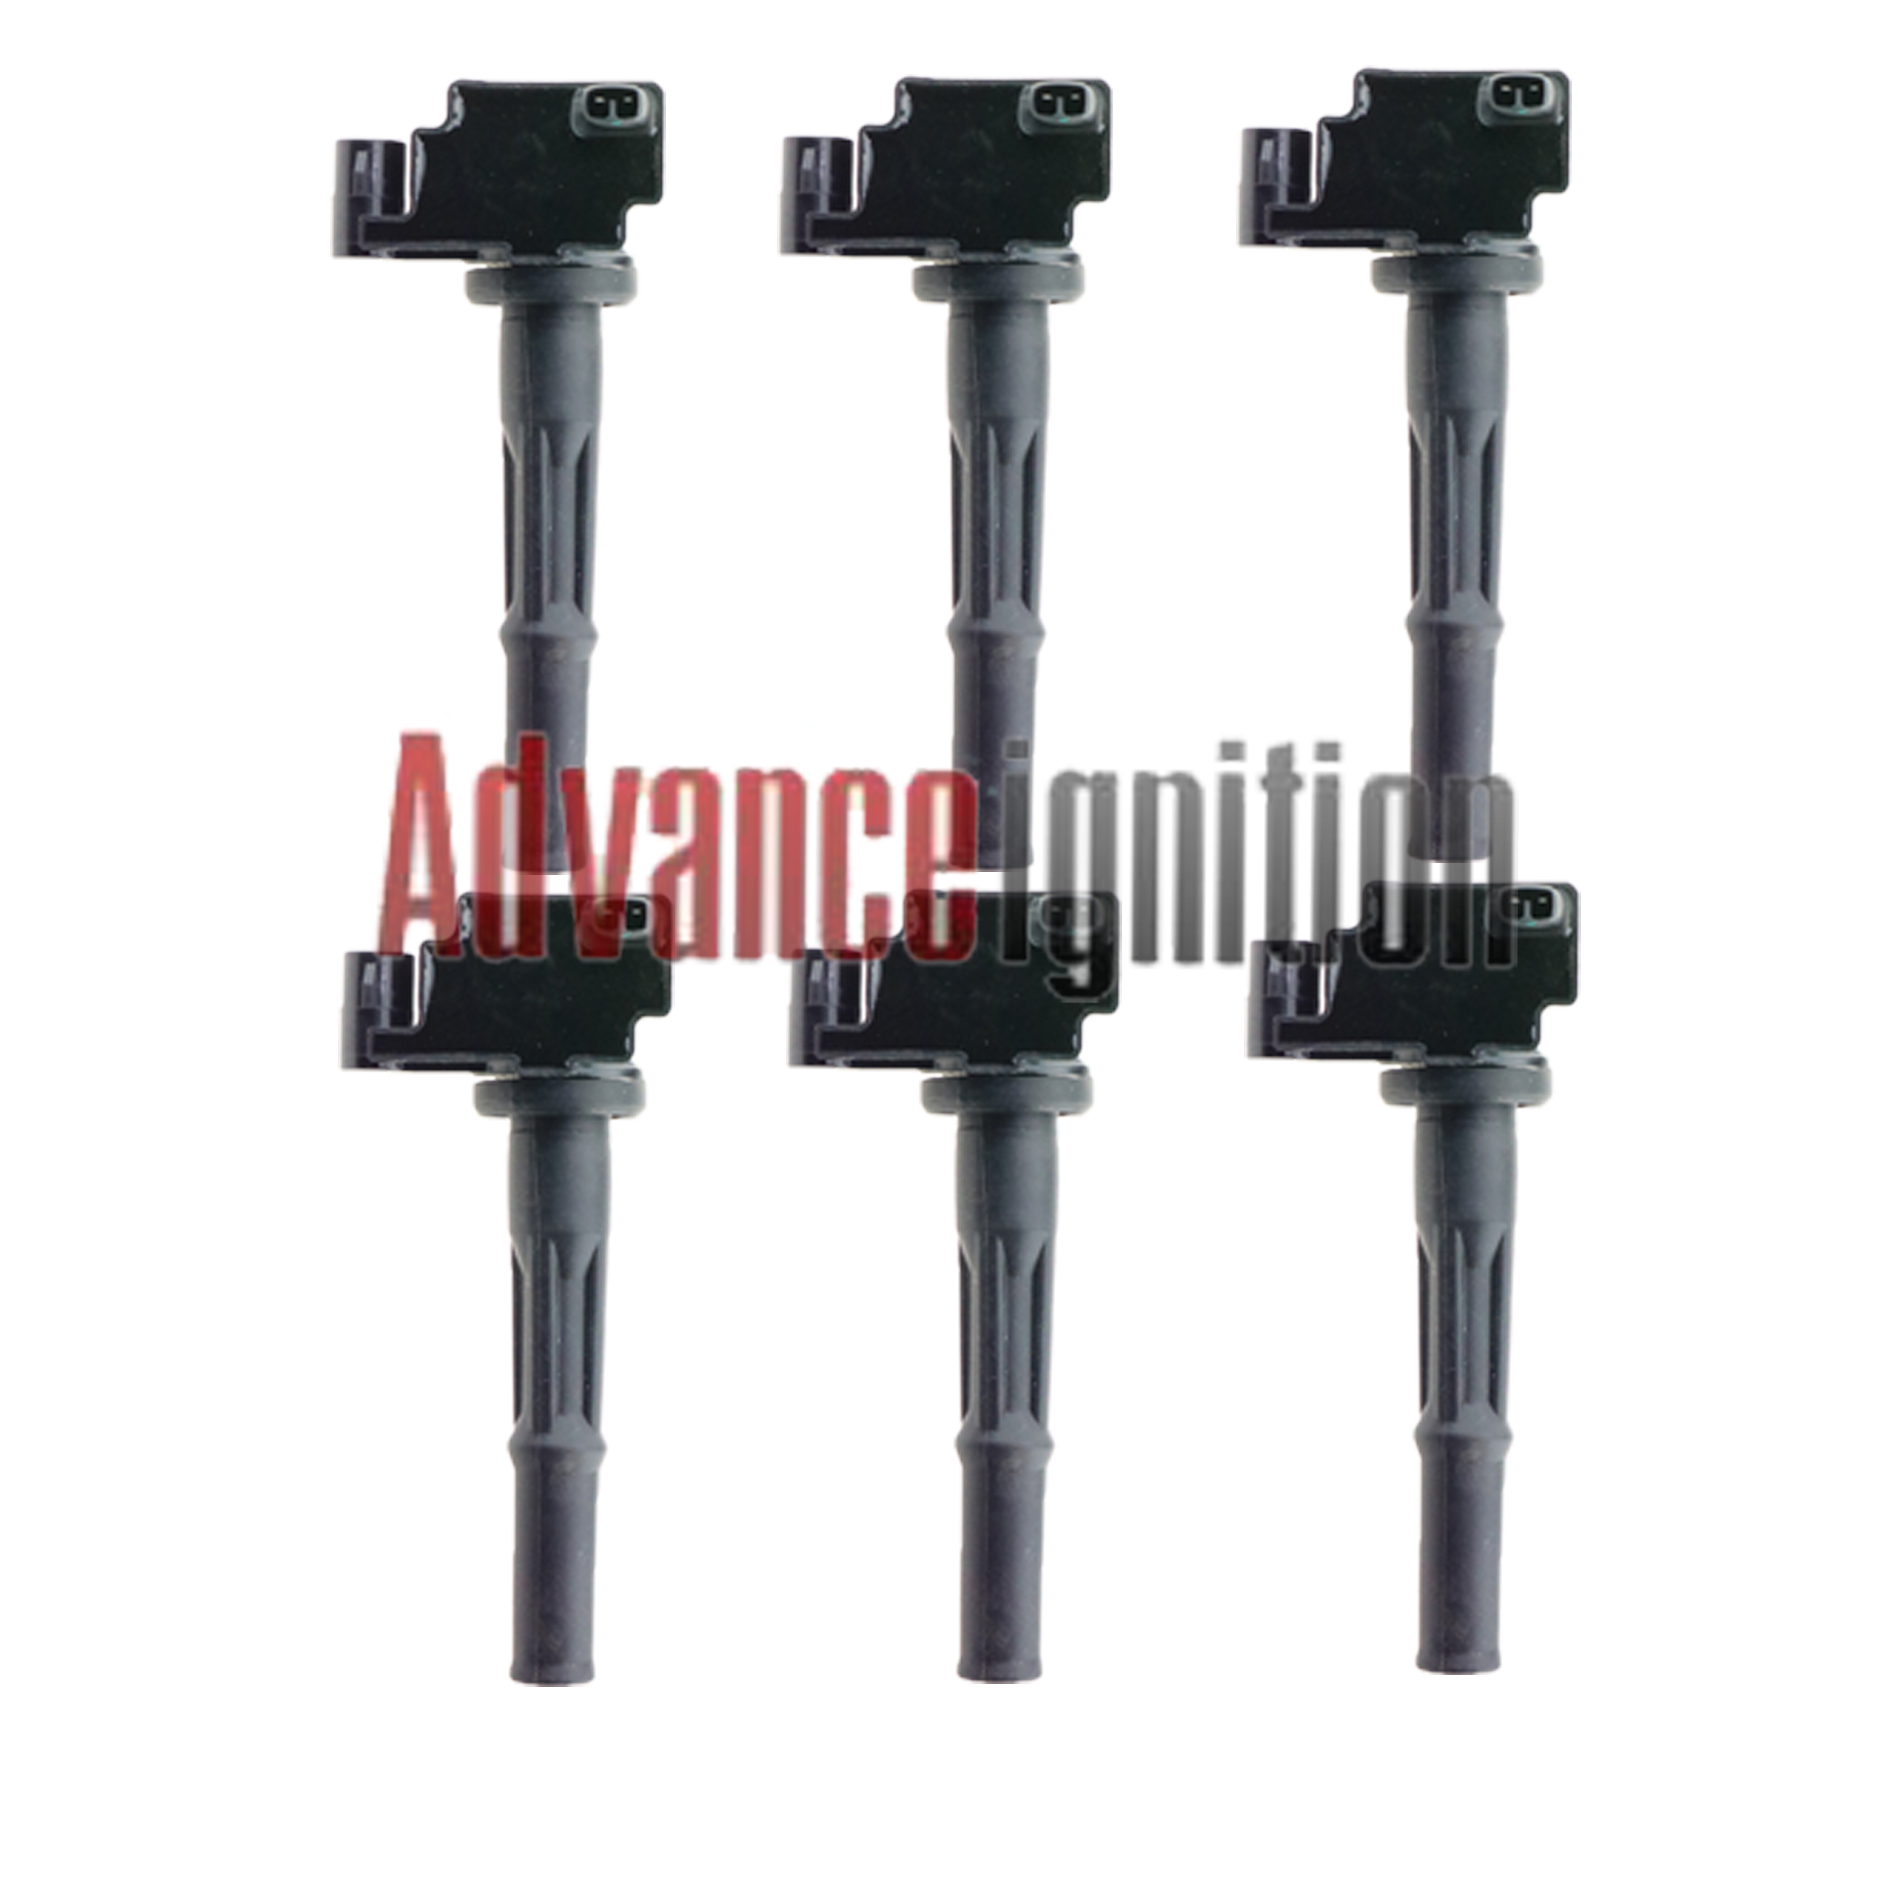 4pc Ignition Coil Jto290 For